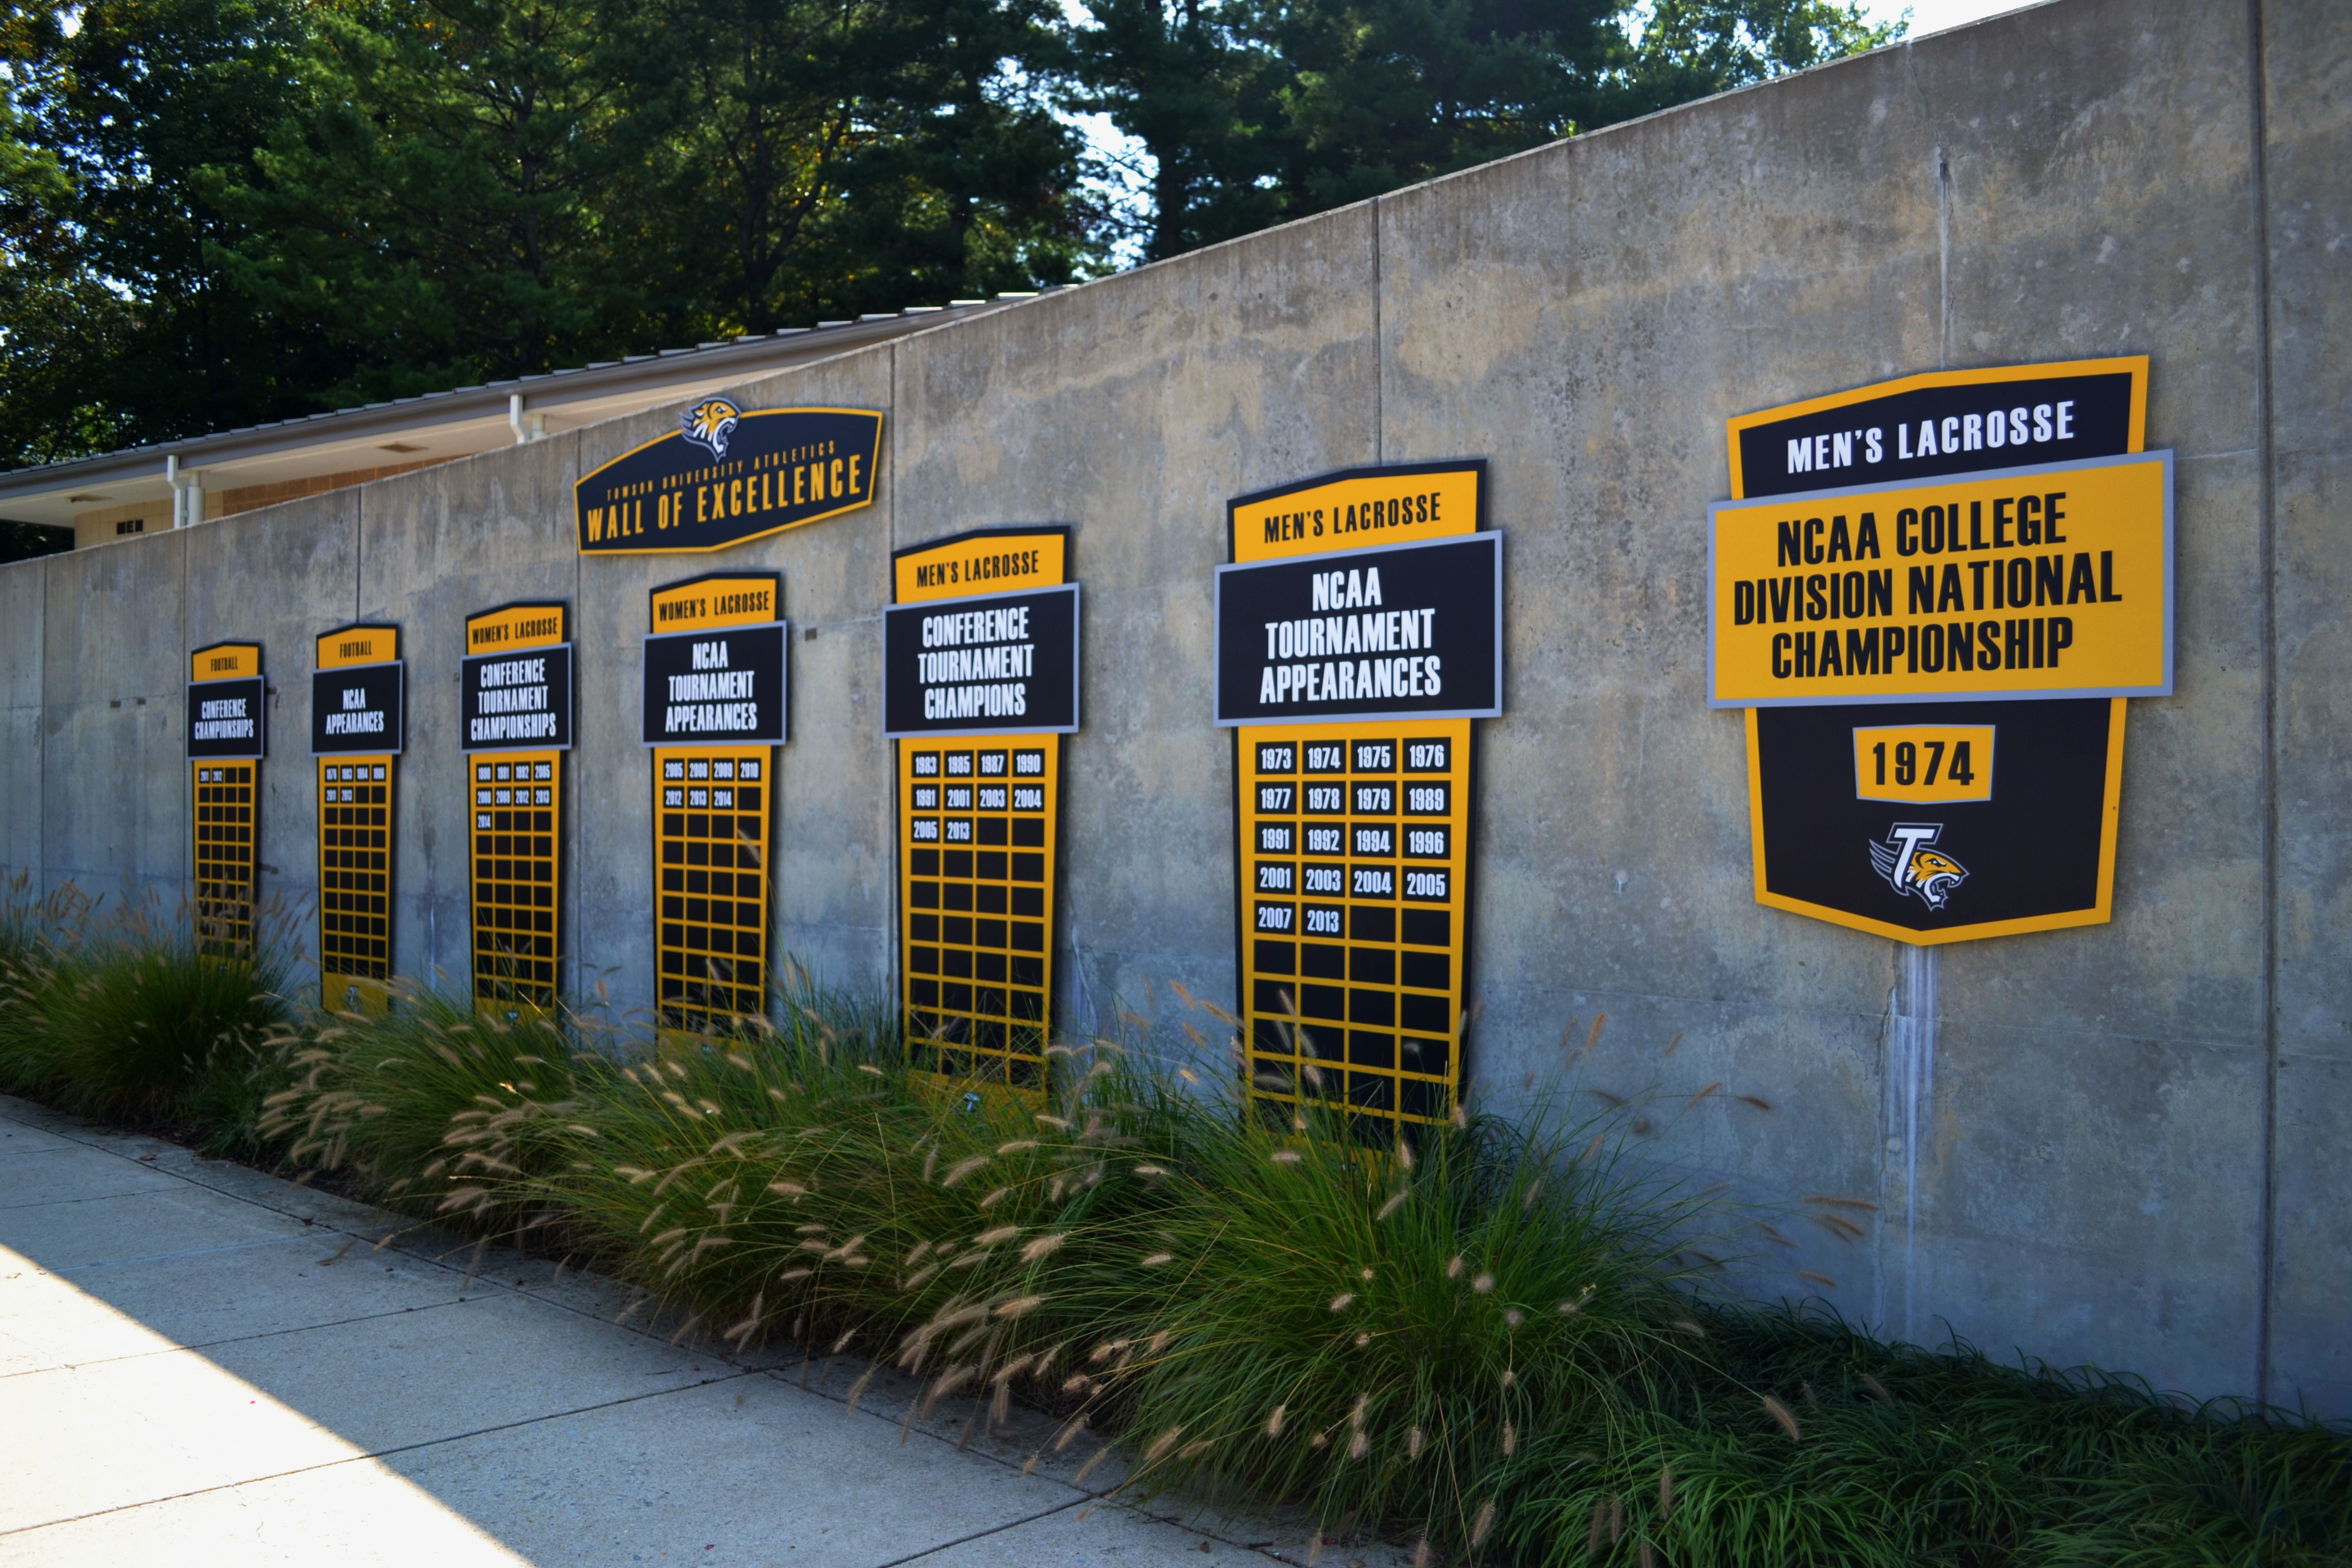 A recent project for Towson University included this Wall of Excellence to honor achievements in football and men's and women's lacrosse. Go Tigers!